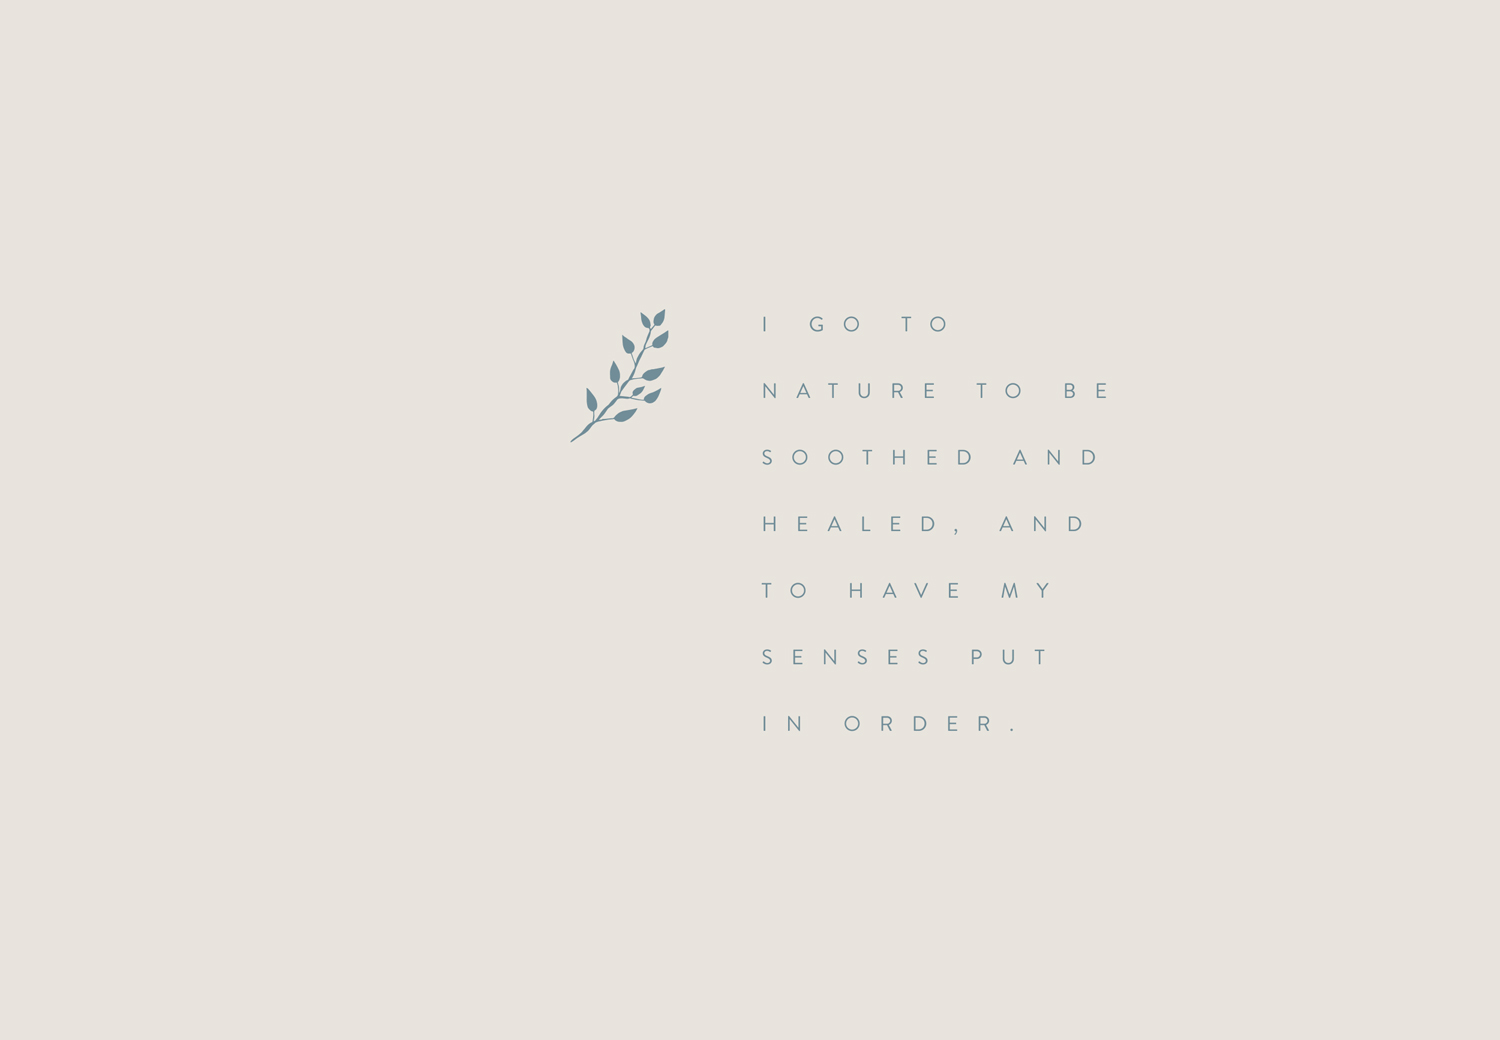 Branding element from brand identity designed for Alice Stewart by Ditto Creative boutique branding agency